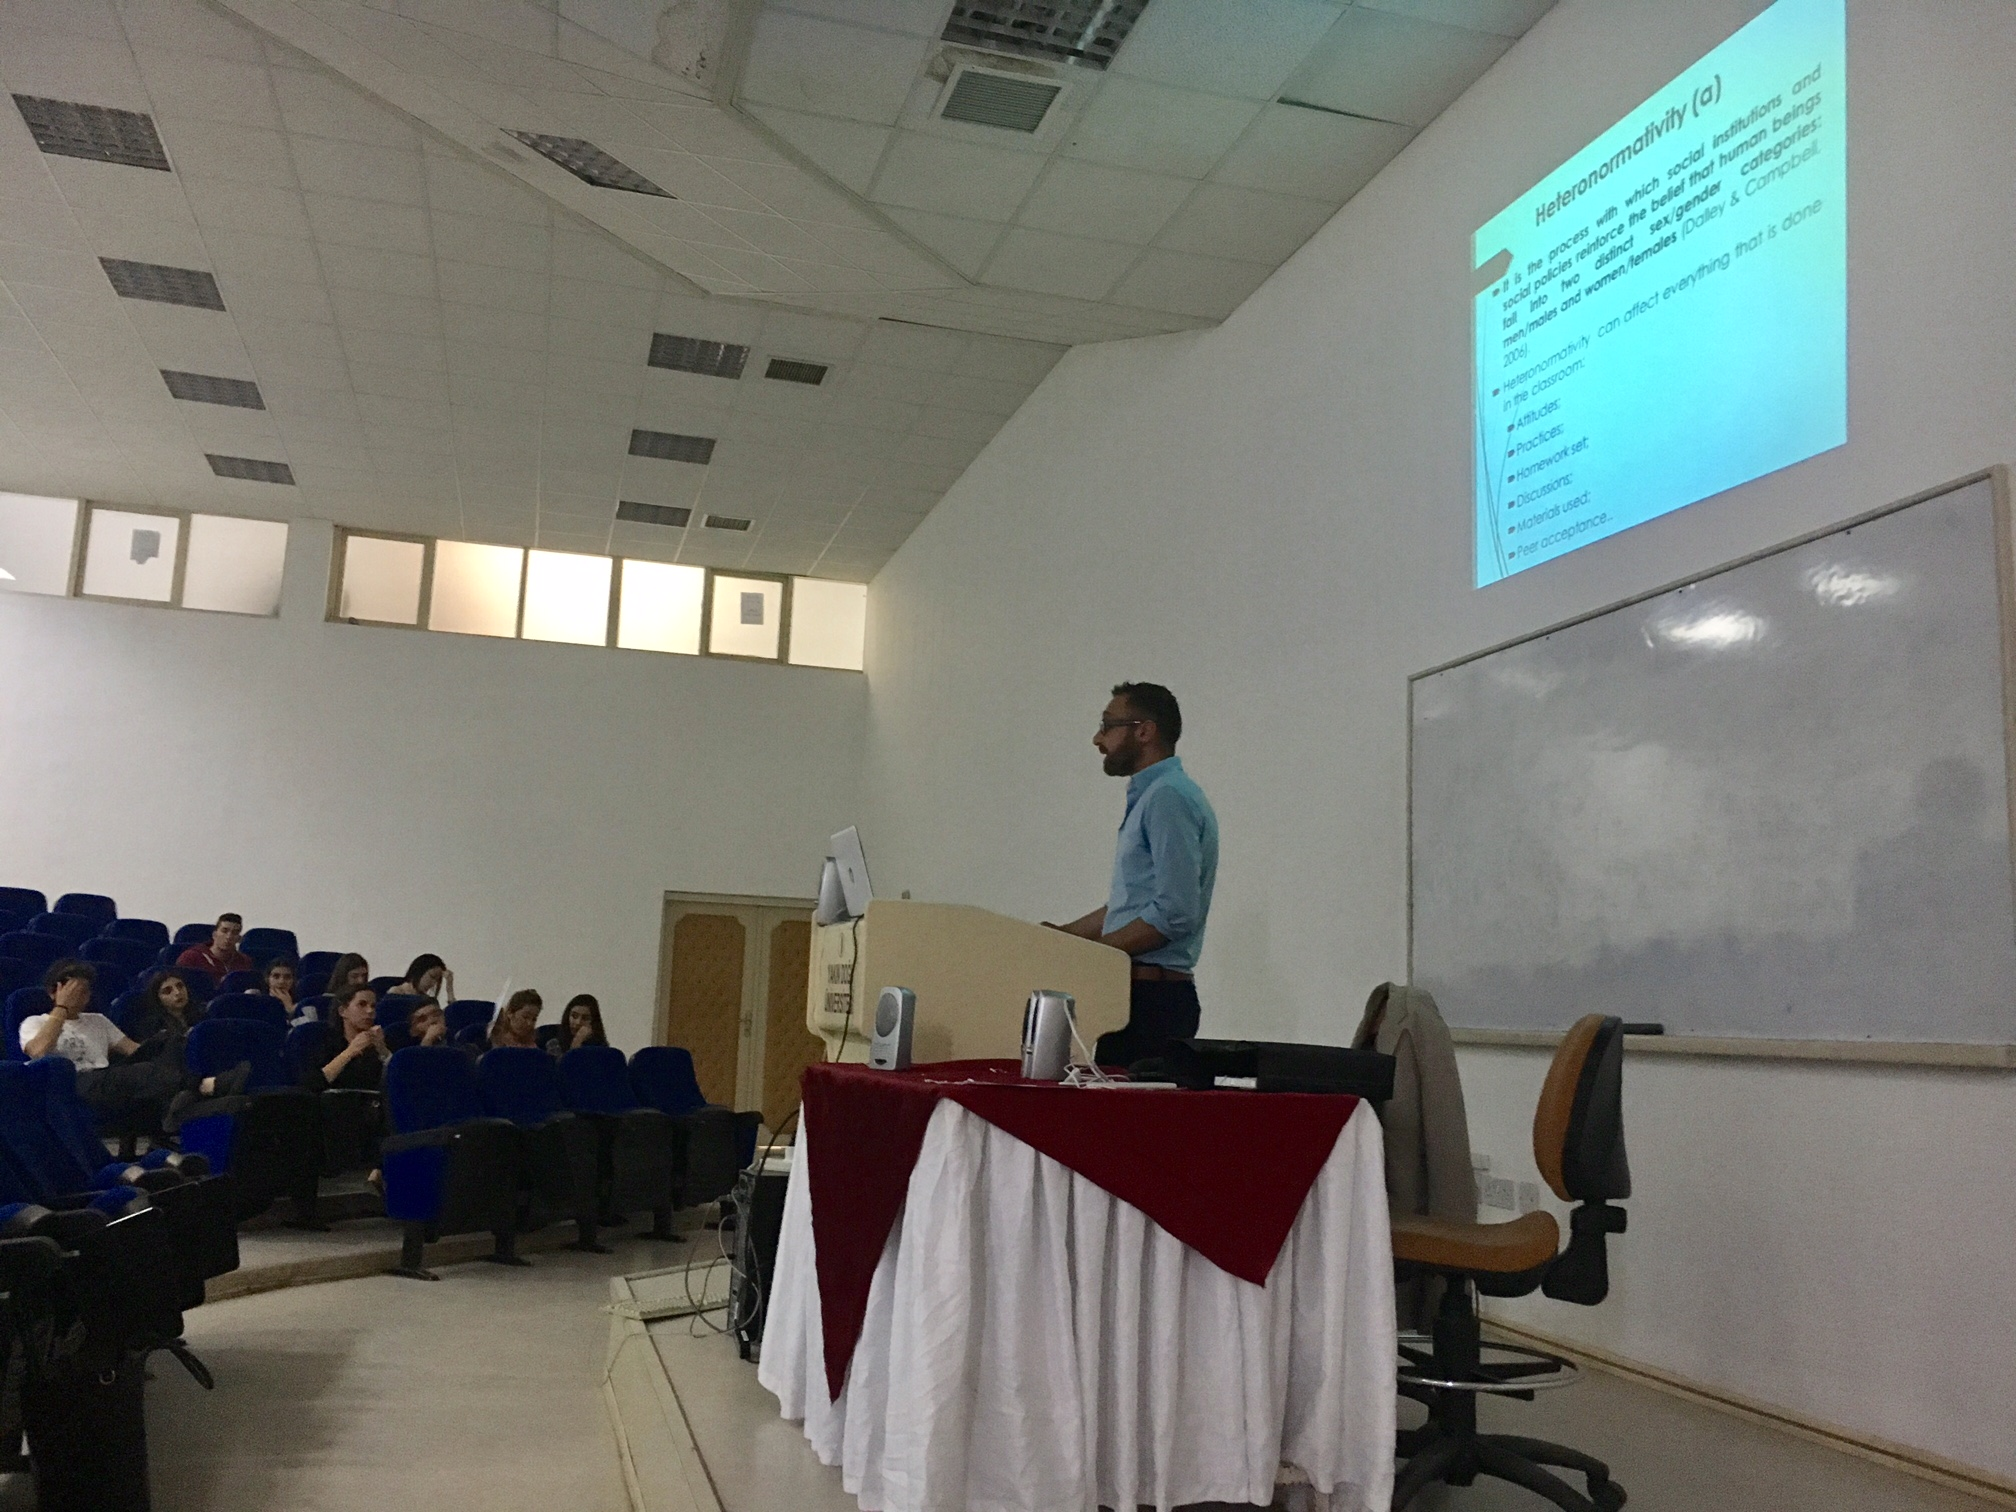 Research Centre for Applied Linguistics (RCAL) held a seminar on Heteronormativity in English as a Foreign Language Classrooms